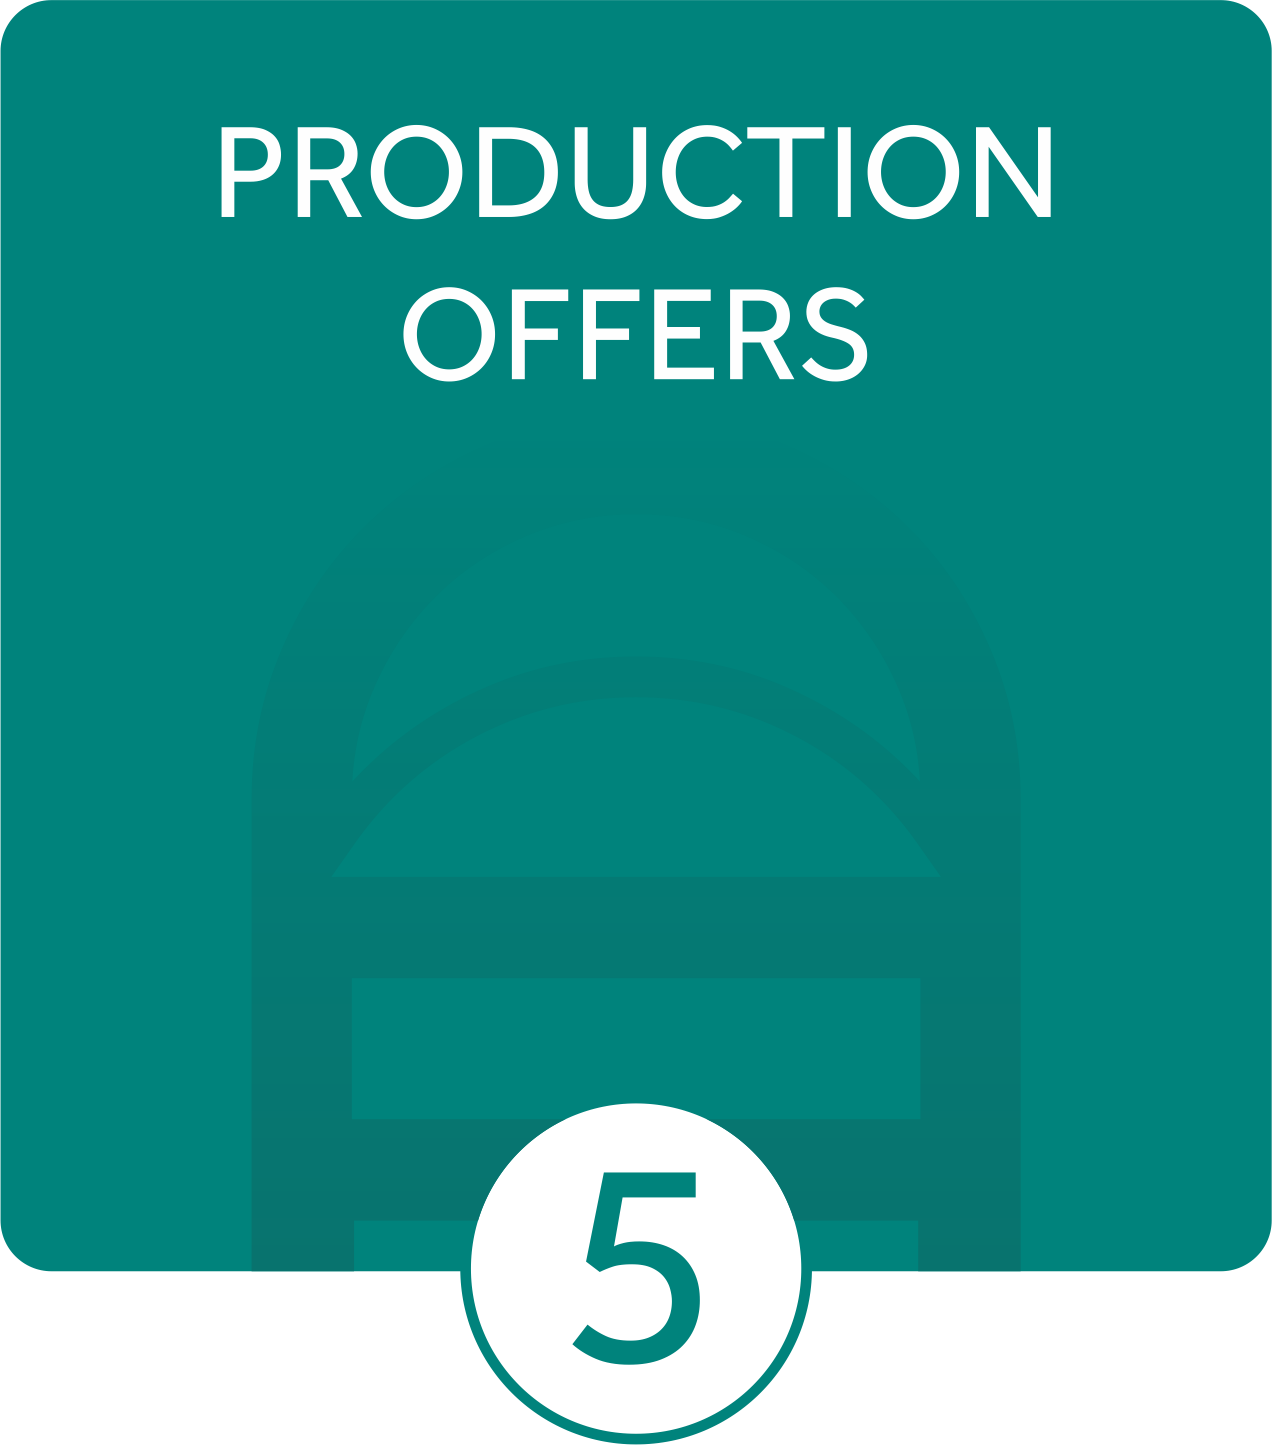 5.Production offers